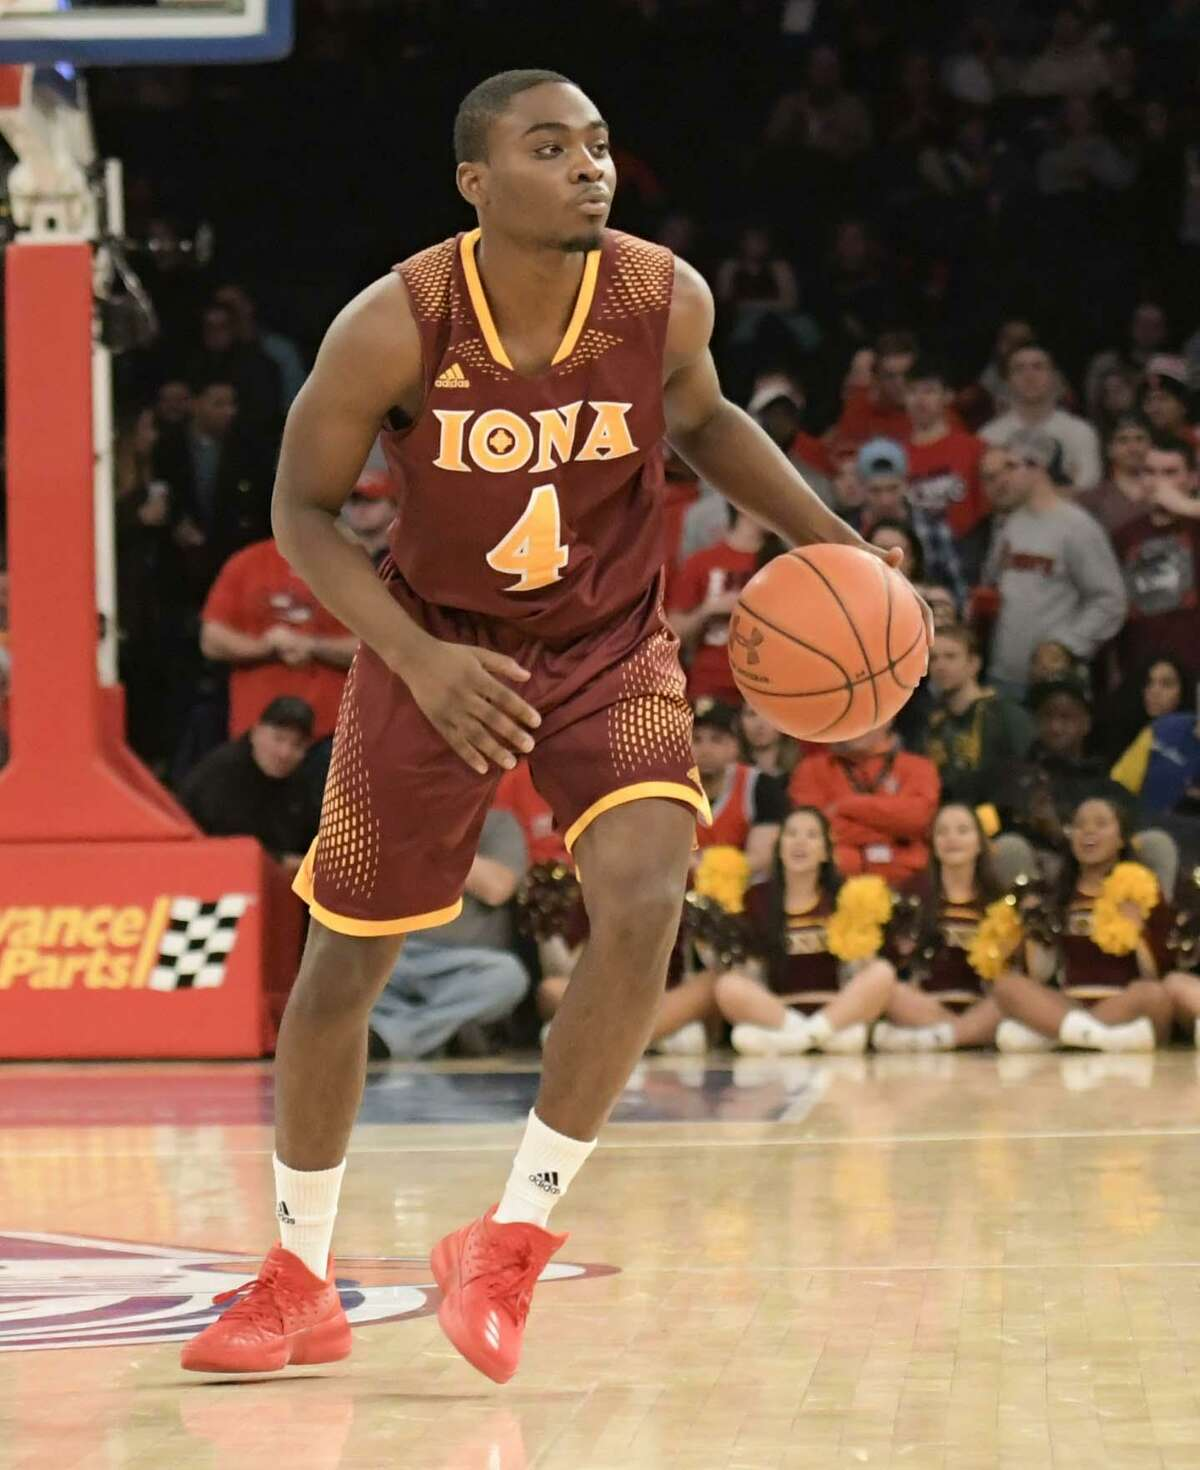 NEW YORK, NY - DECEMBER 17: Schadrac Casimir #4 of the Iona Gaels dribbles the ball against the St. John's Red Storm during the MSG Holiday Festival at Madison Square Garden on December 17, 2017 in New York City. (Photo by Porter Binks/Getty Images)